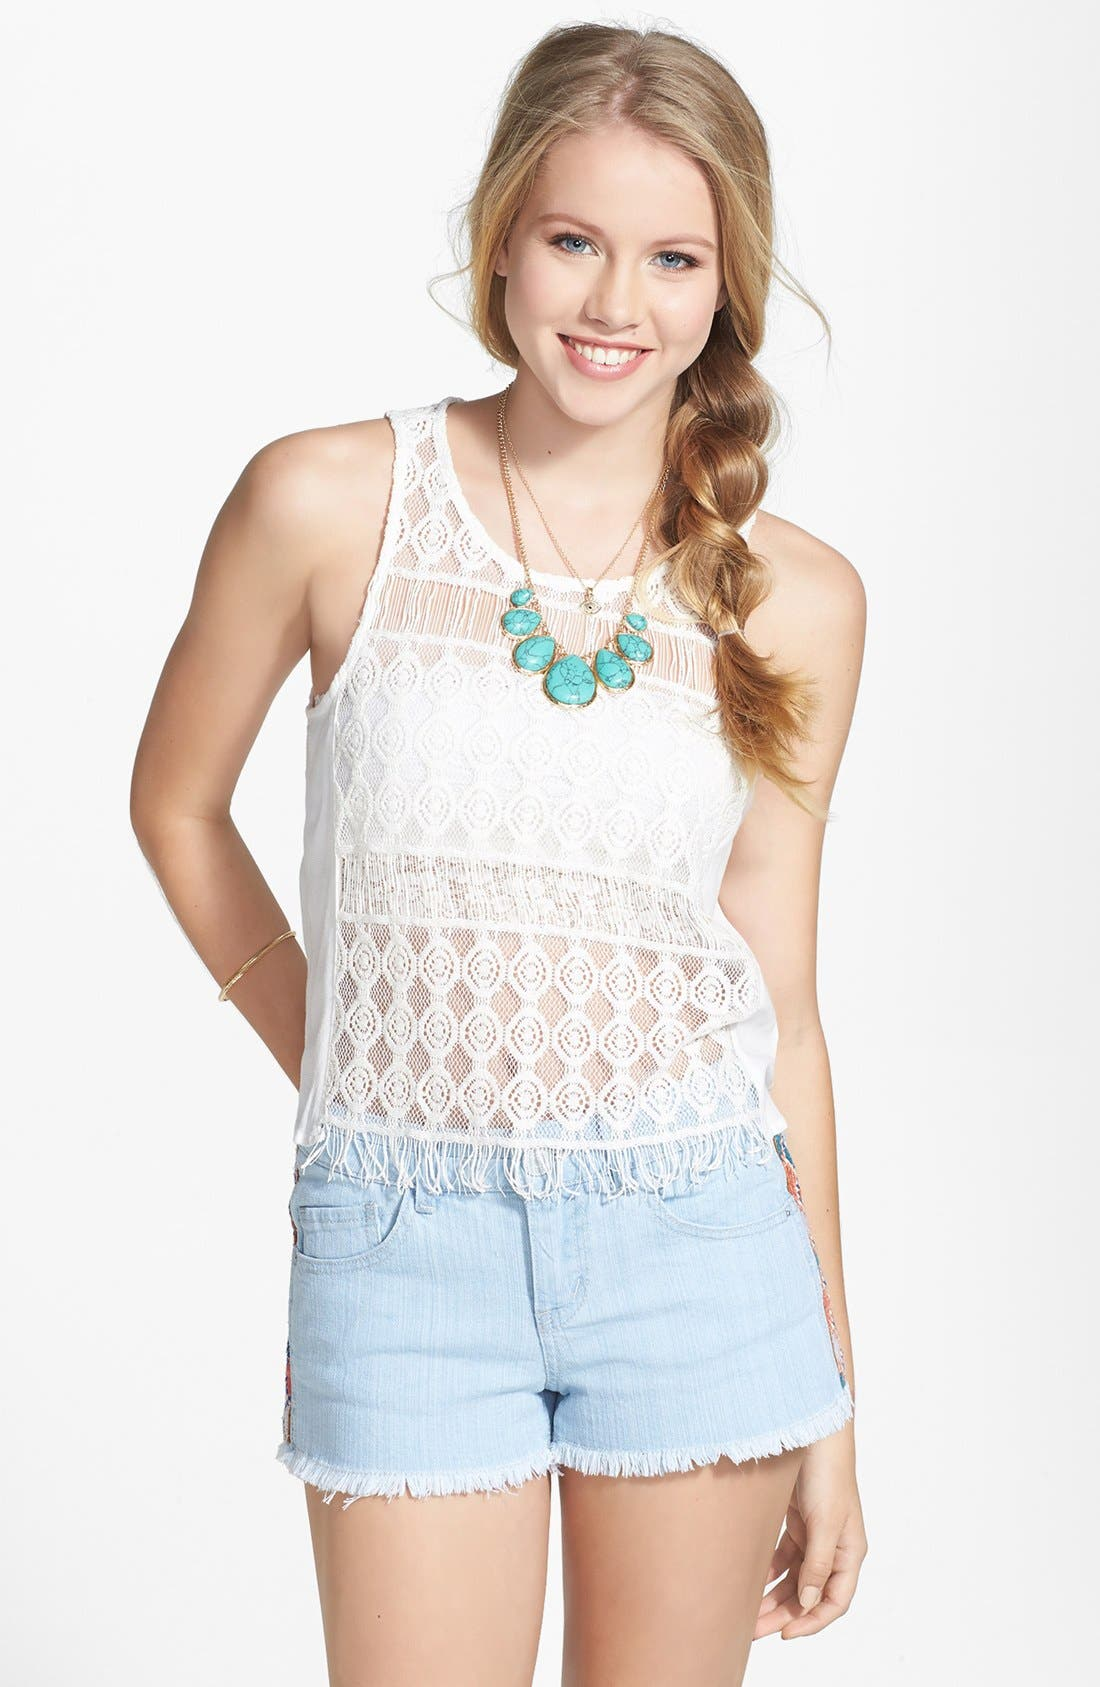 Main Image - Chloe K Sheer Crocheted Top (Juniors) (Online Only)